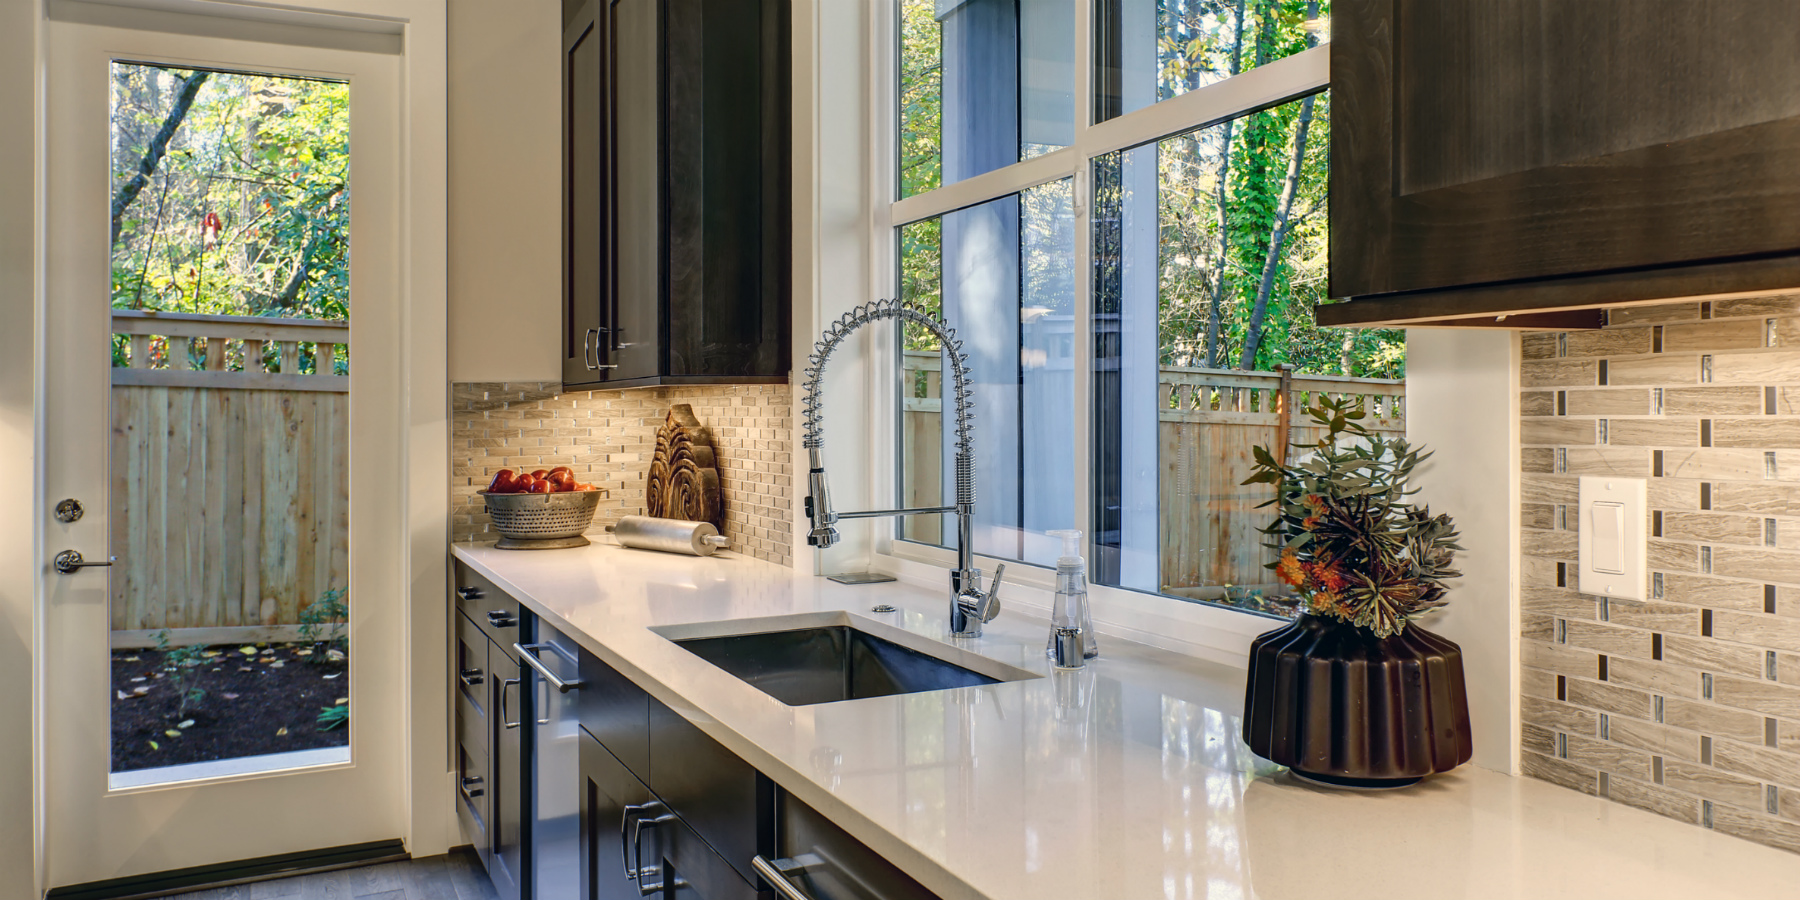 Contemporary kitchen with chrome faucet and brown cabinets